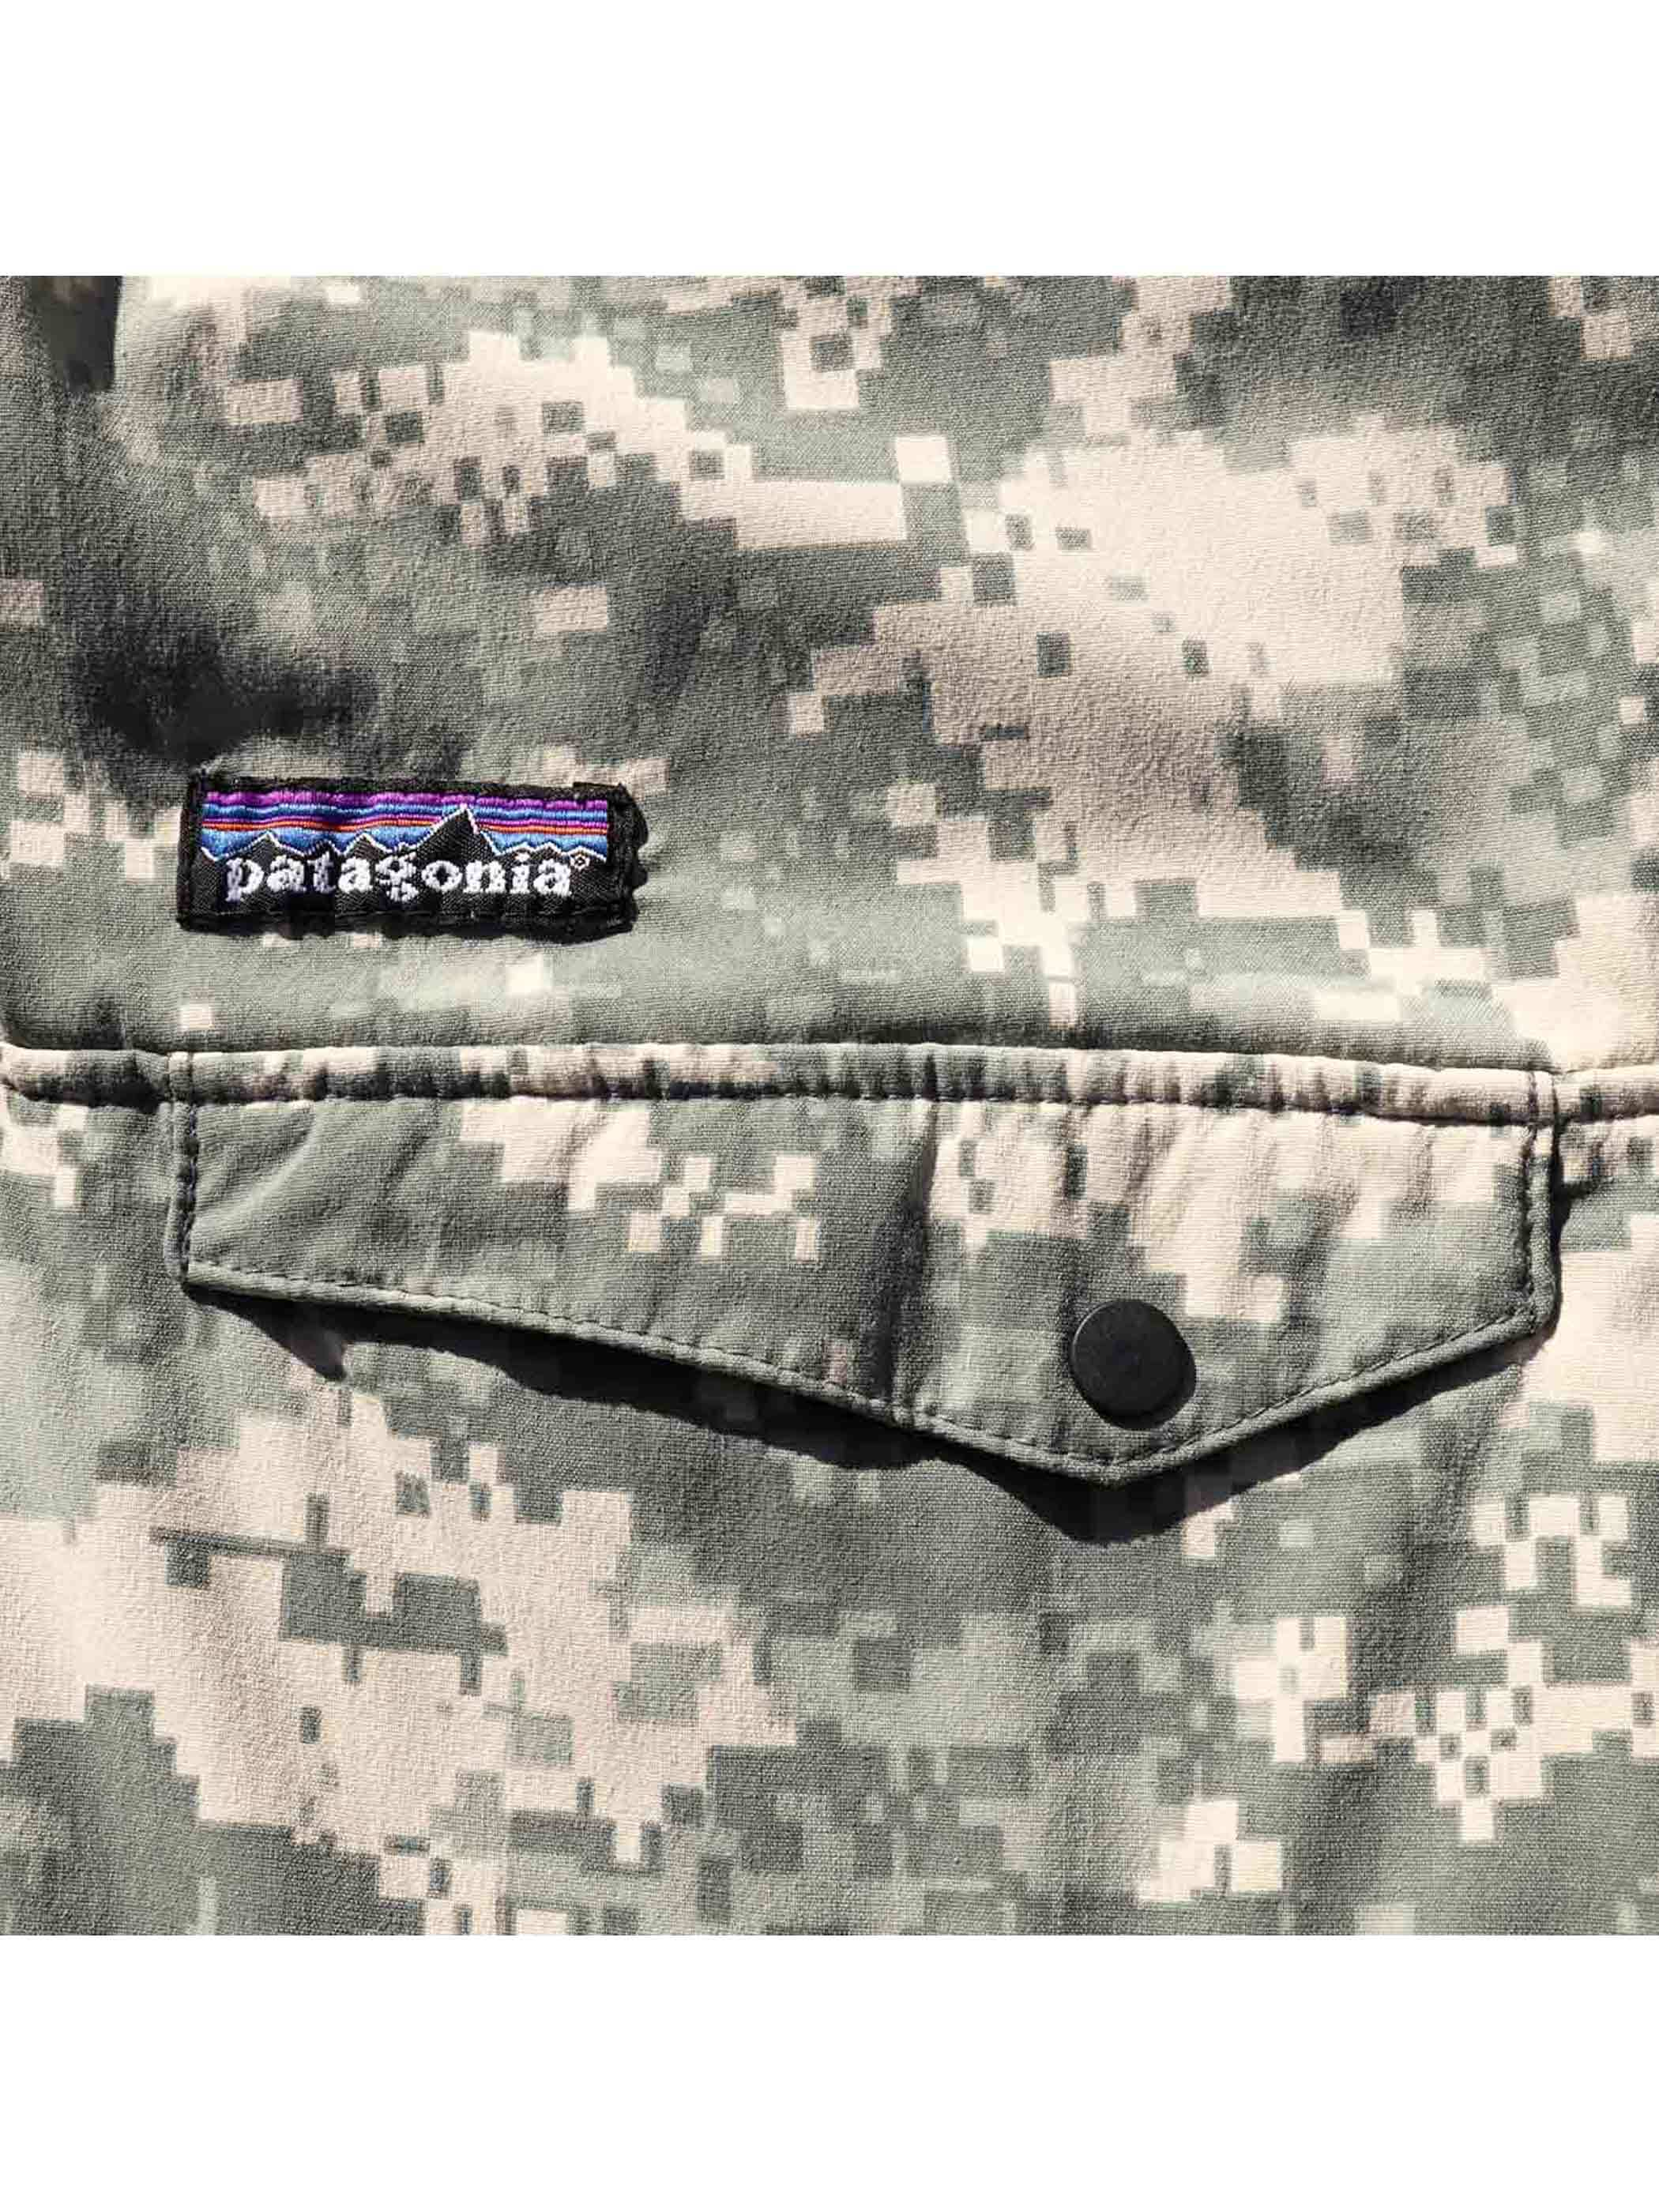 """00's PATAGONIA """"ACU DIGITAL CAMO"""" Reversible Snap-T Special [About L]"""